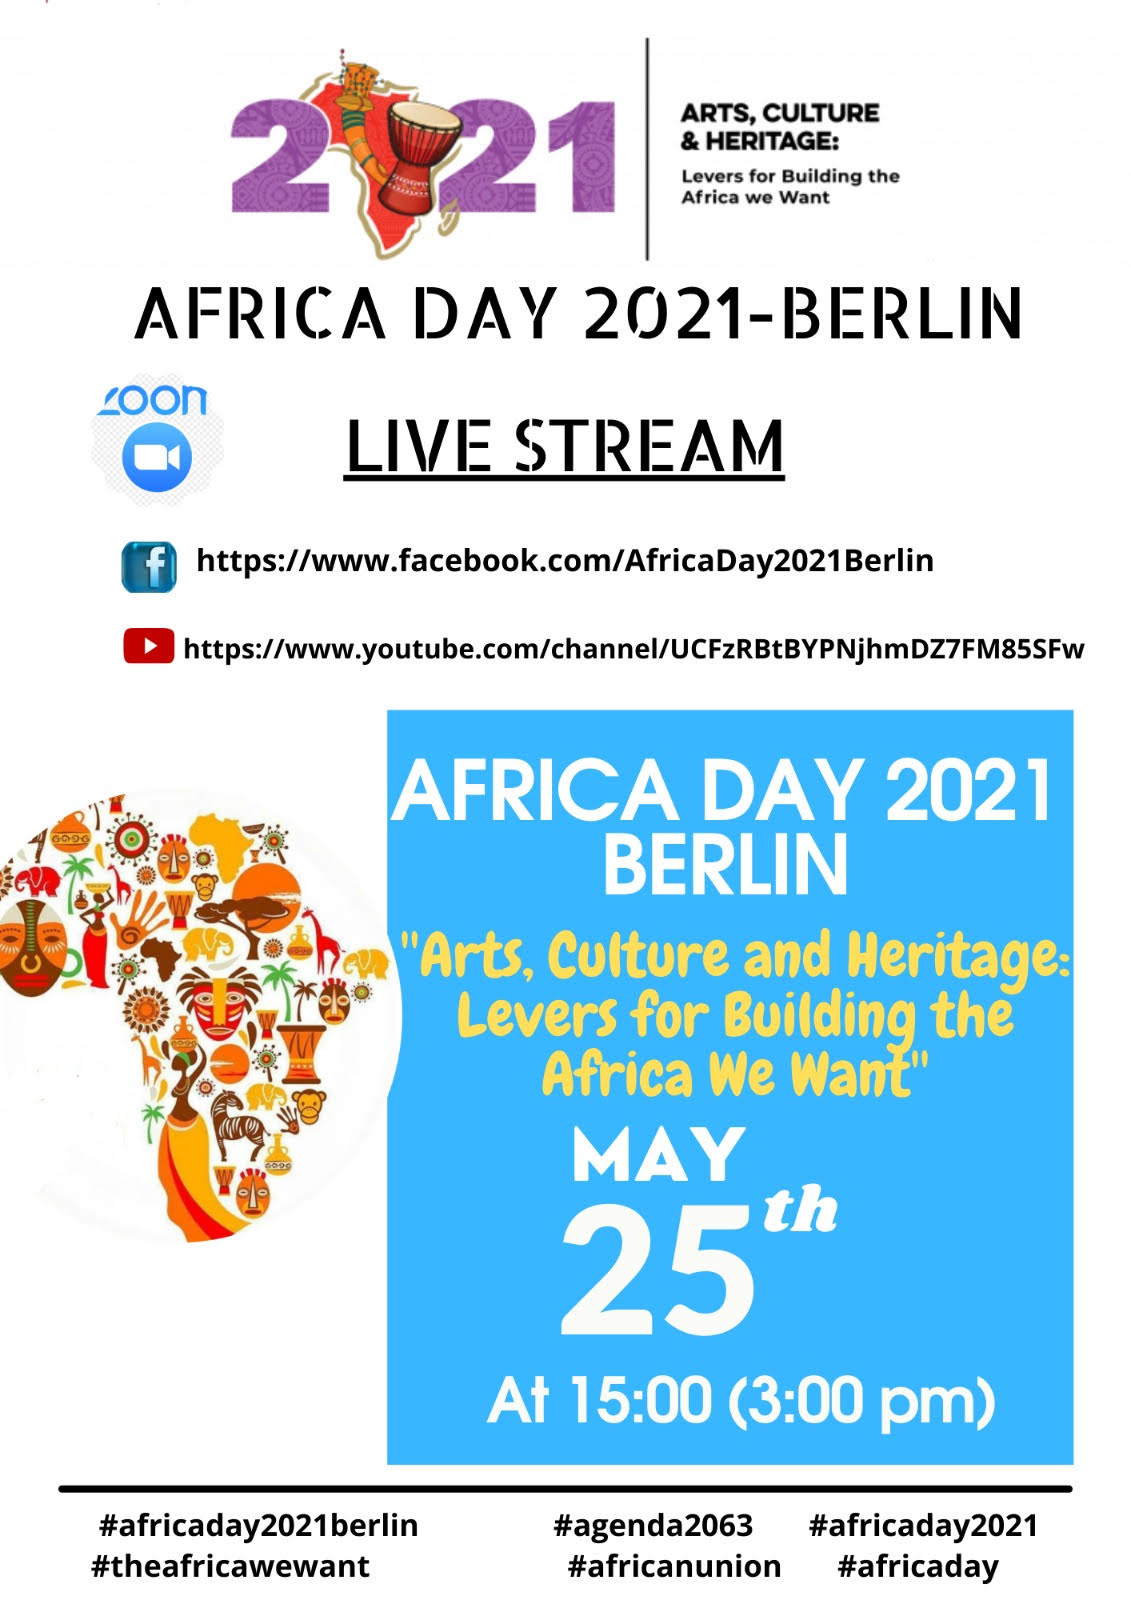 Africa Day link